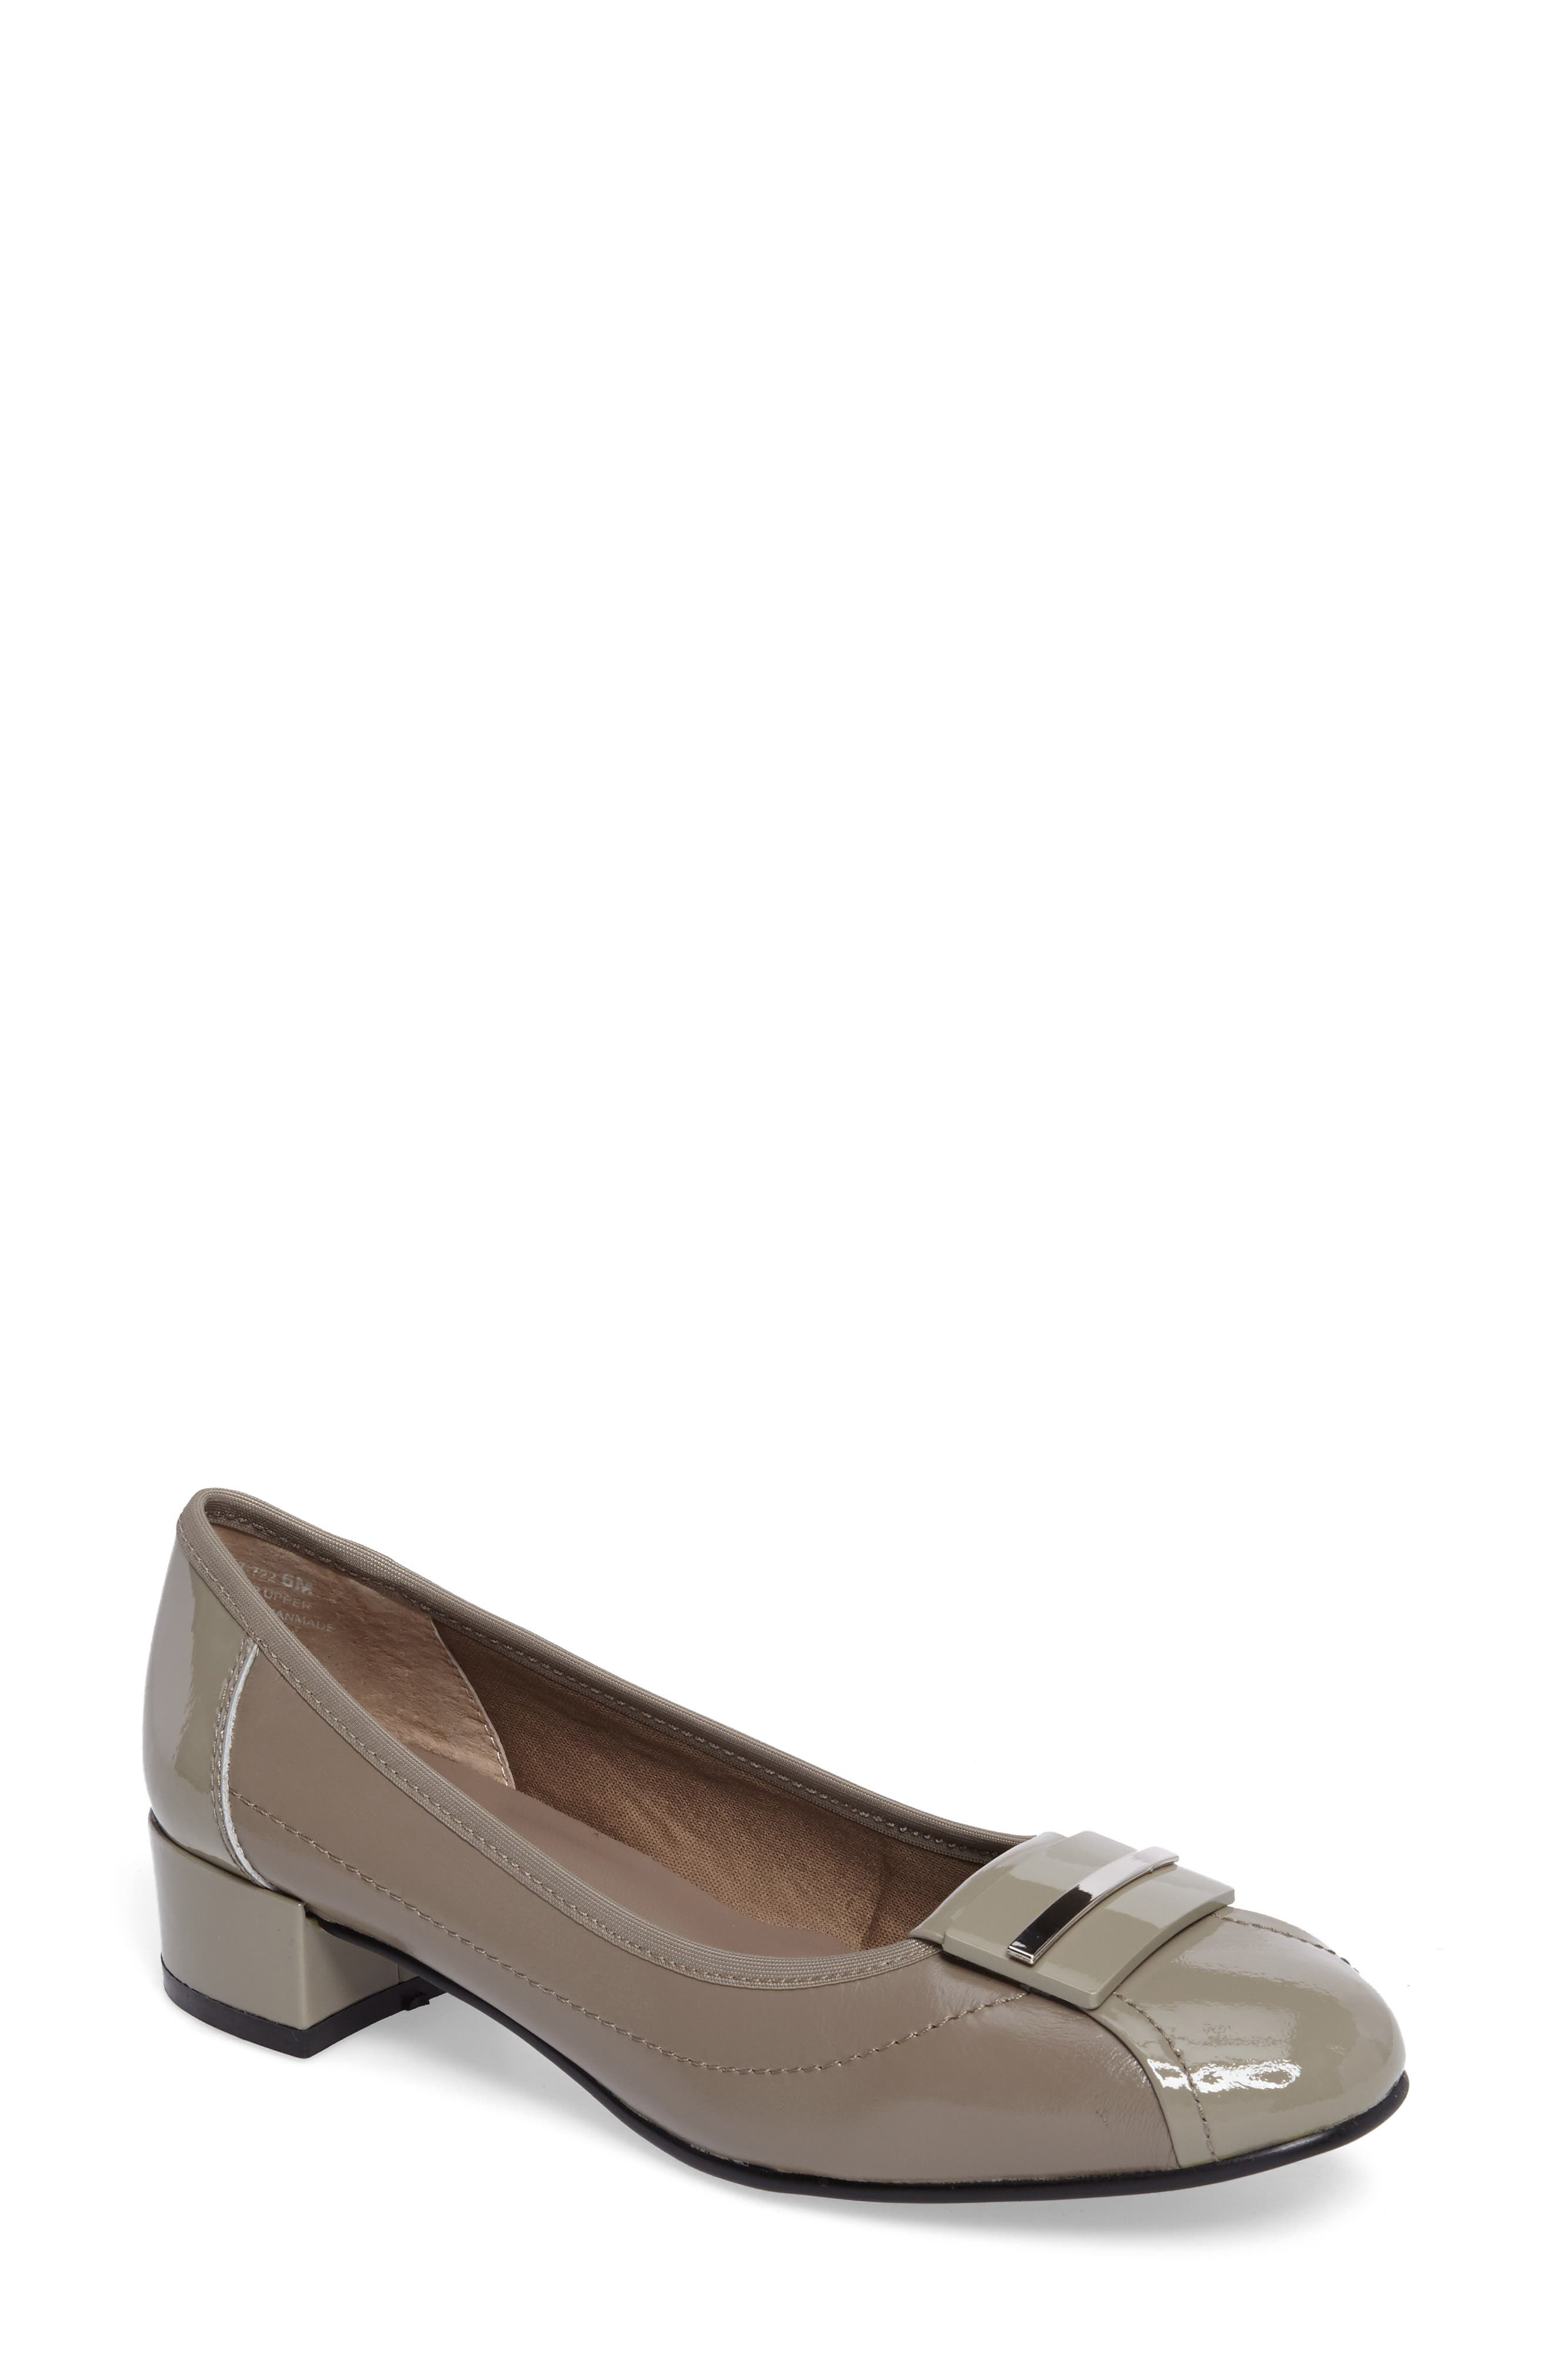 Ideal Pump,                         Main,                         color, Taupe Patent Leather